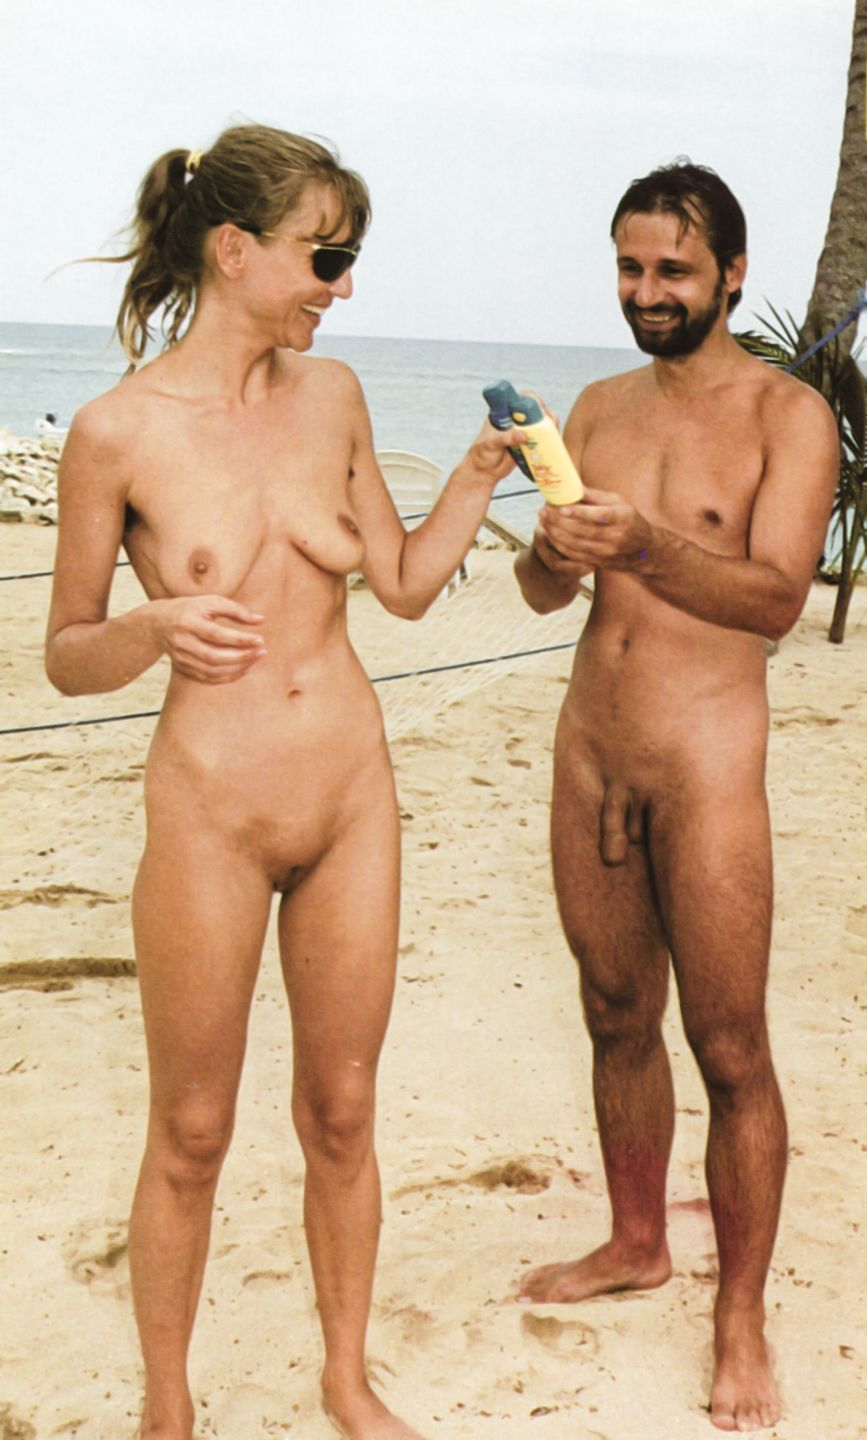 Naked guy and woman